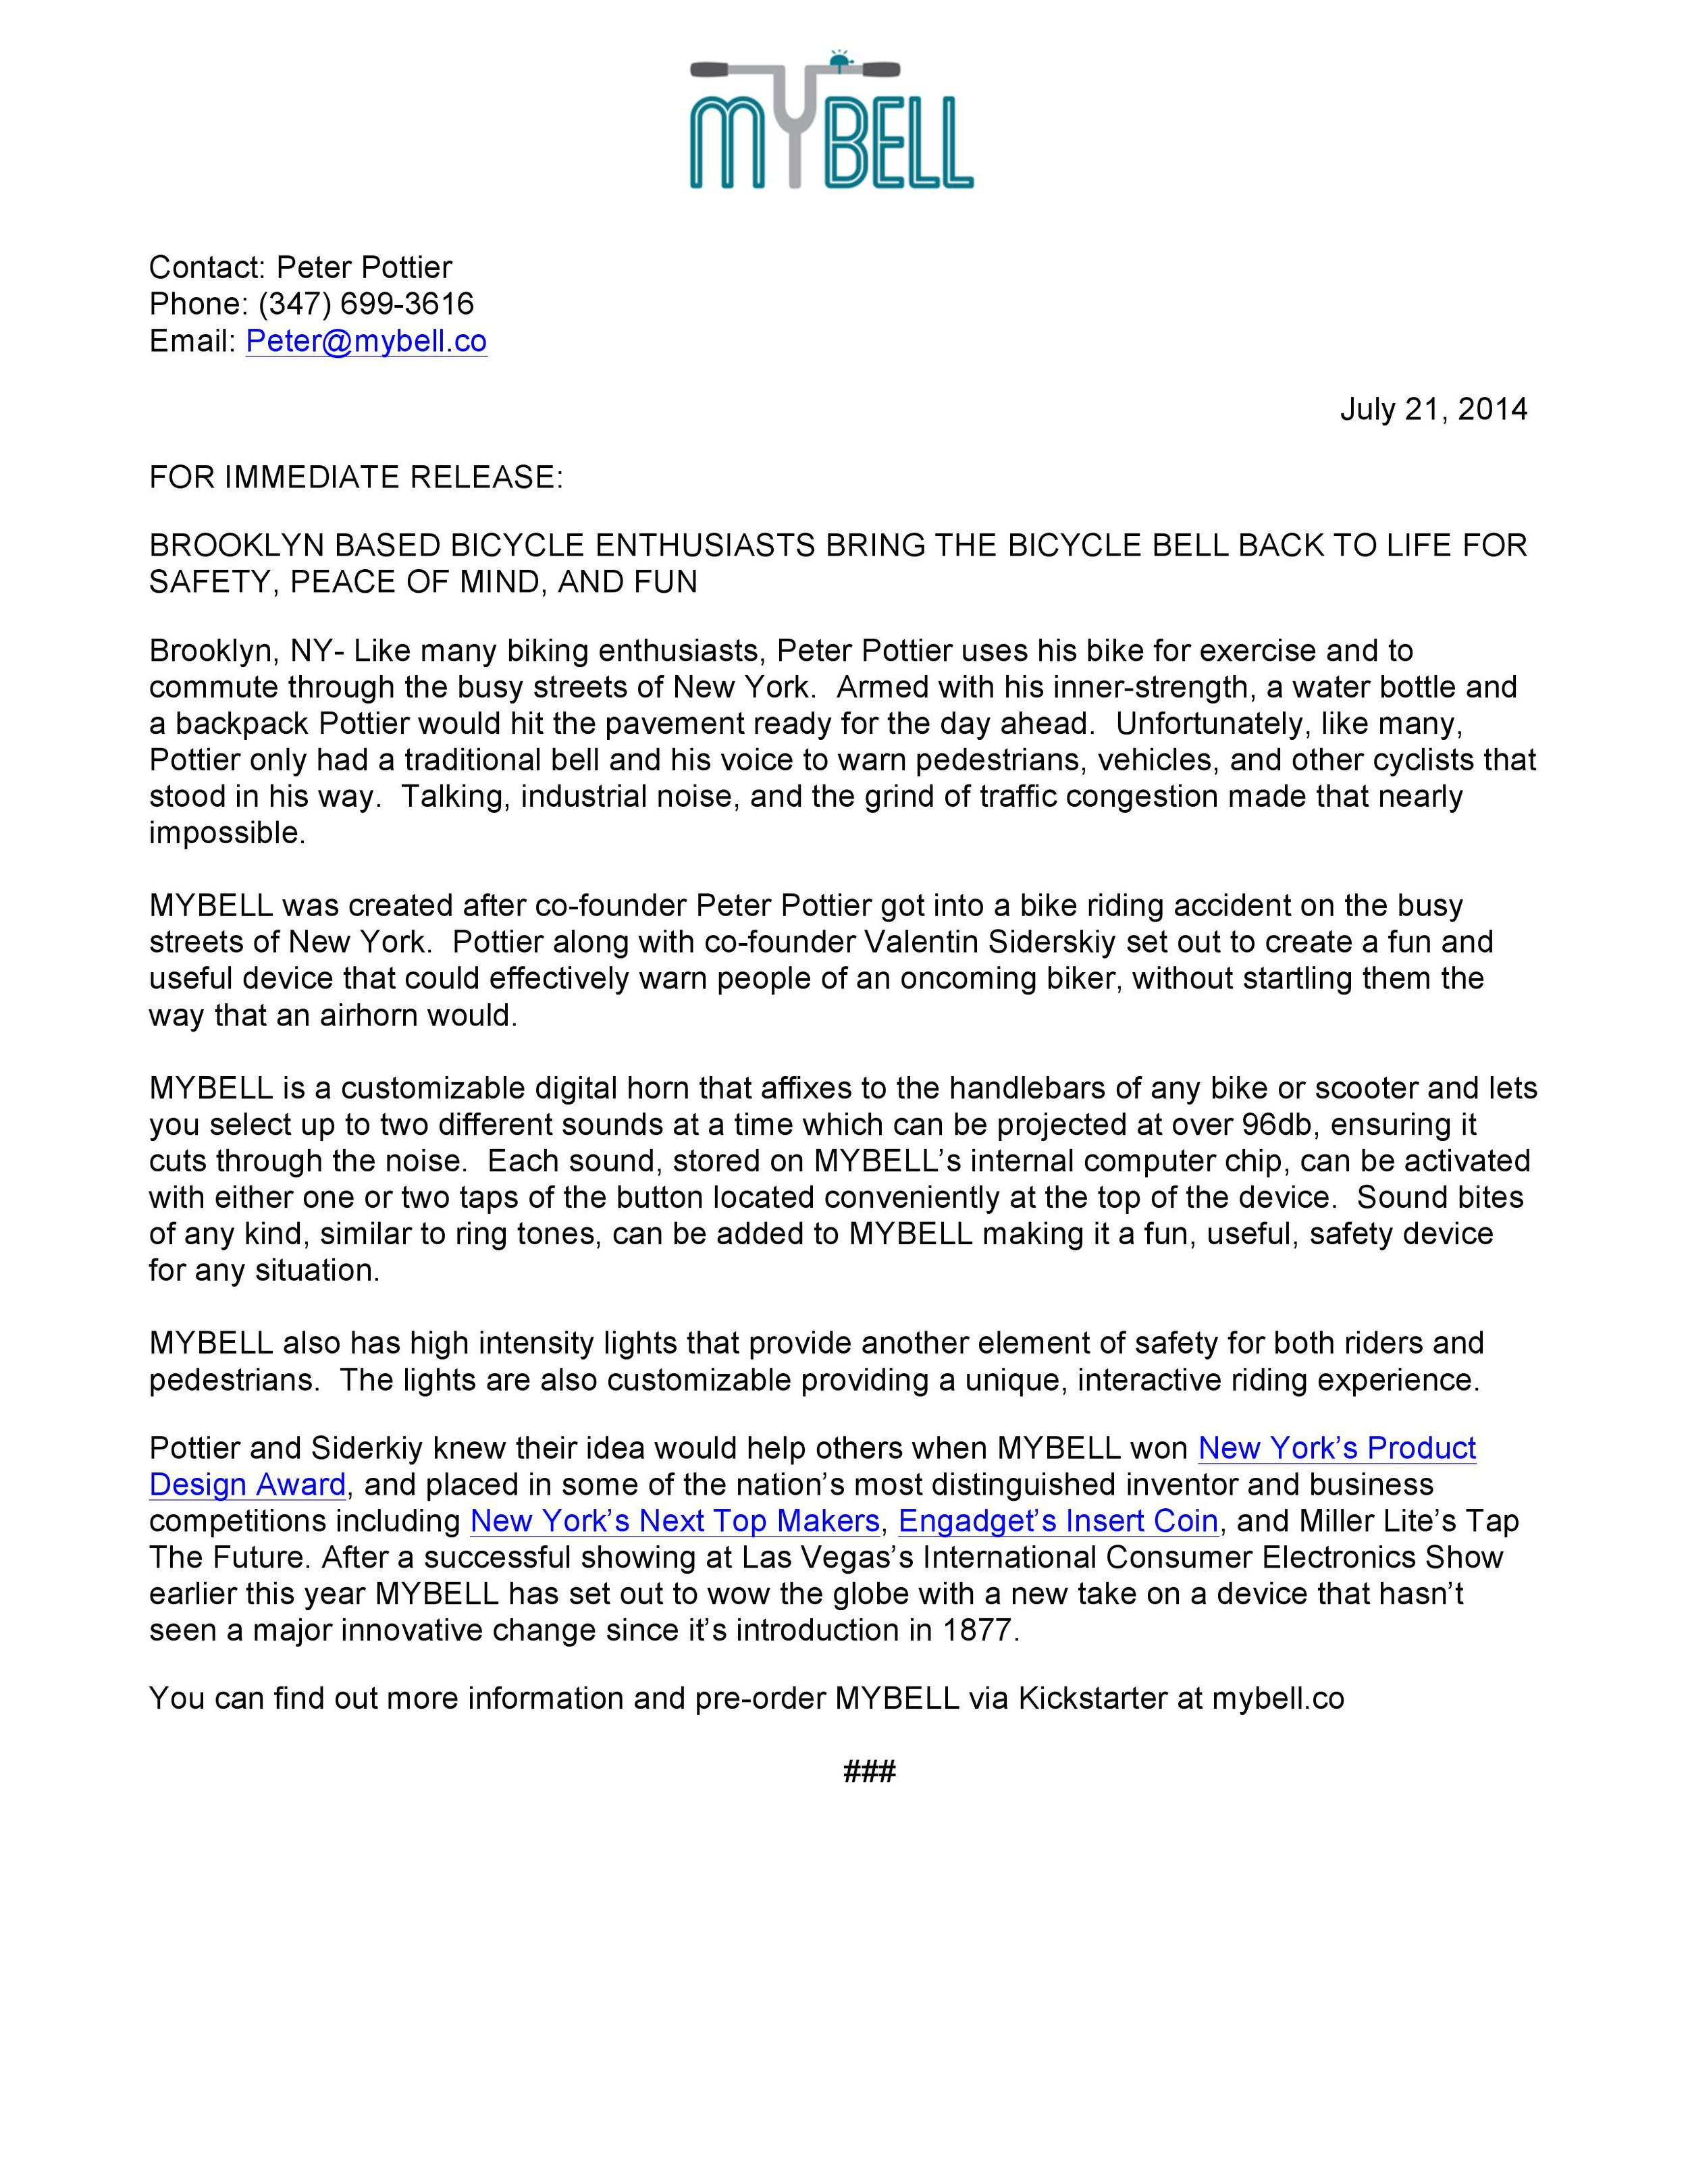 MYBELL Great For Safe Fitness Enthusiasts Press Release-page-001.jpg